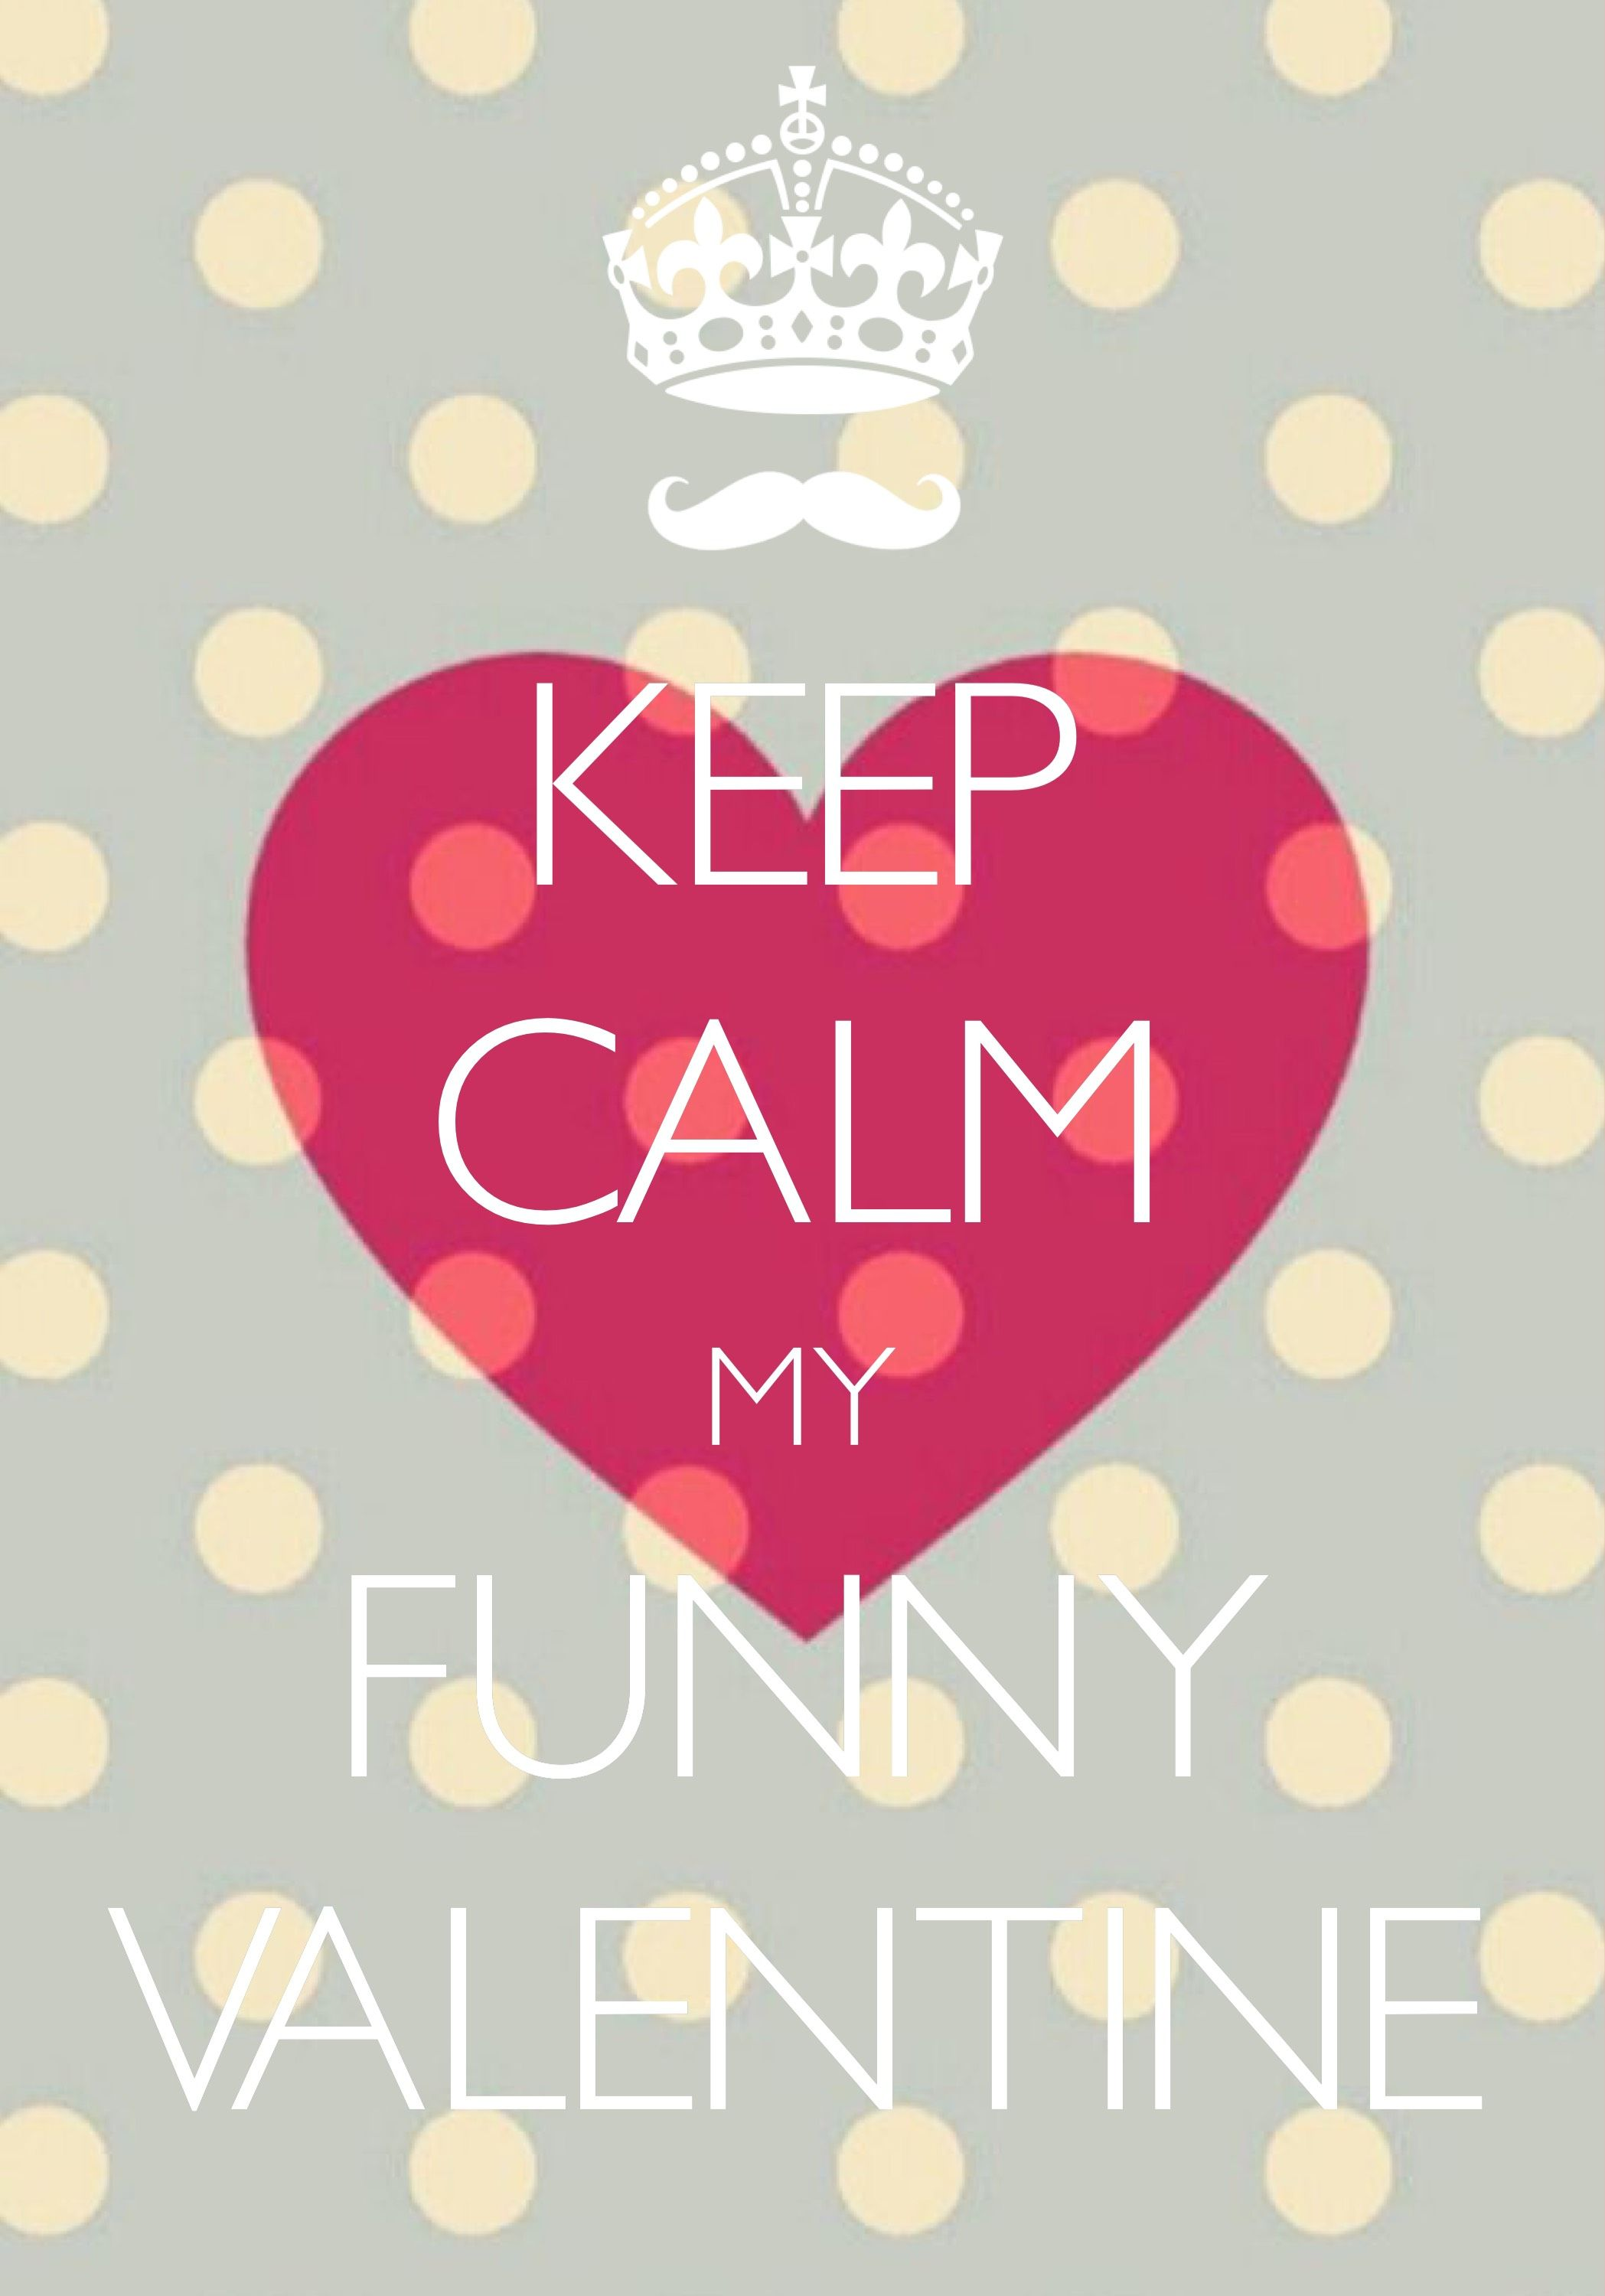 keep calm my funny valentine Created with Keep Calm and Carry